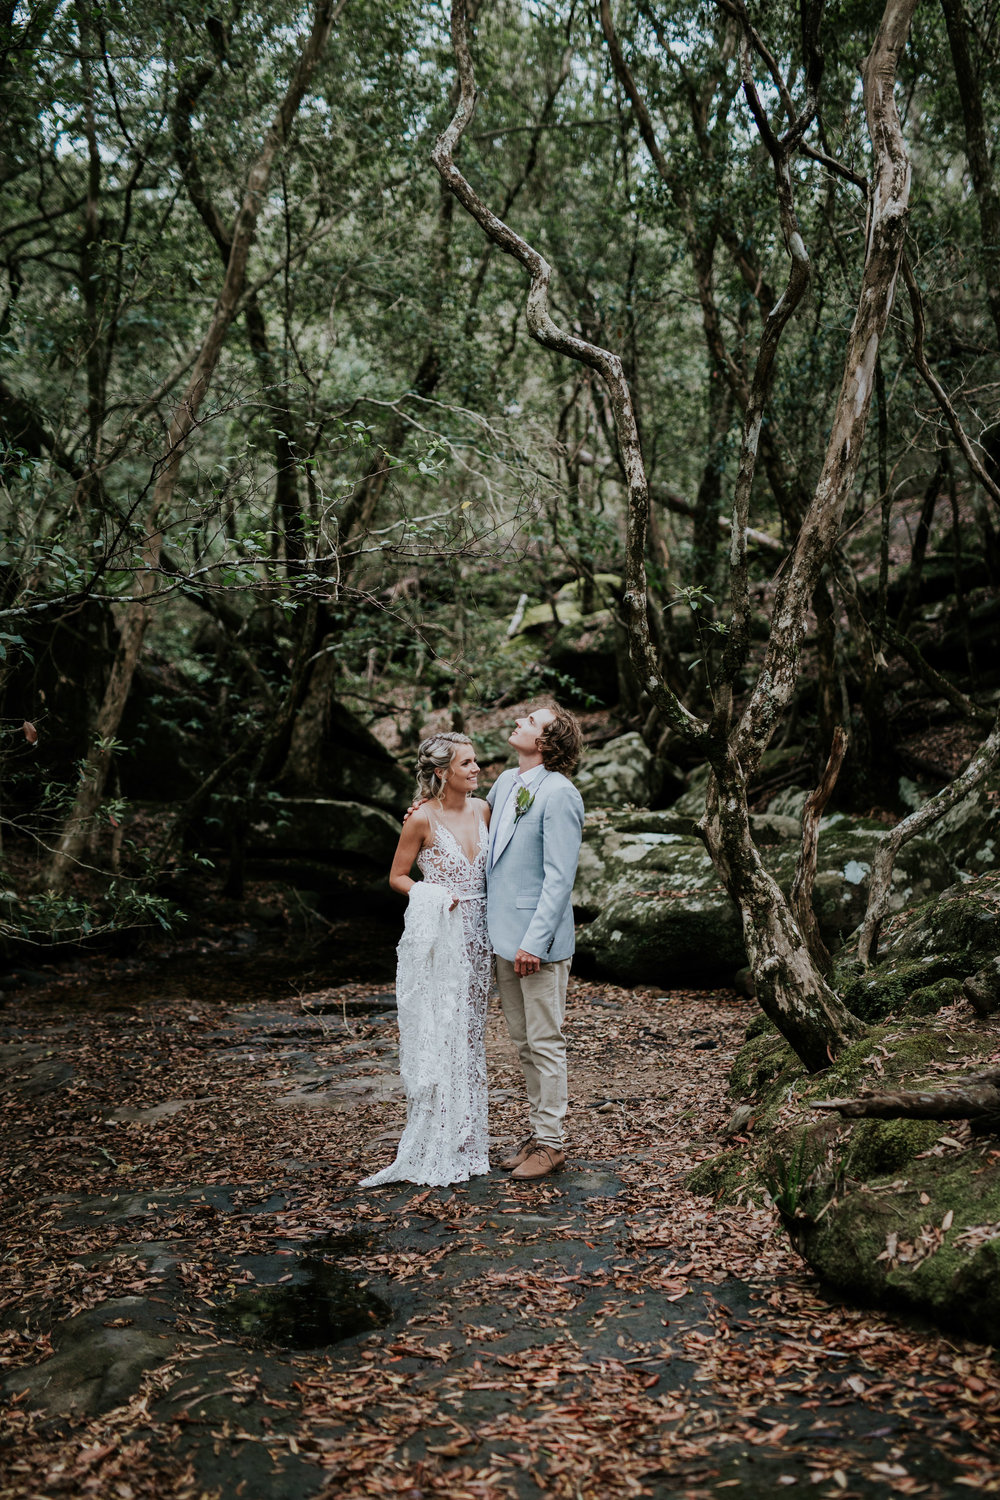 Jesse+Matt+Kangaroo+Valley+Wildwood+Boho+Relaxed+wedding+-155.jpg